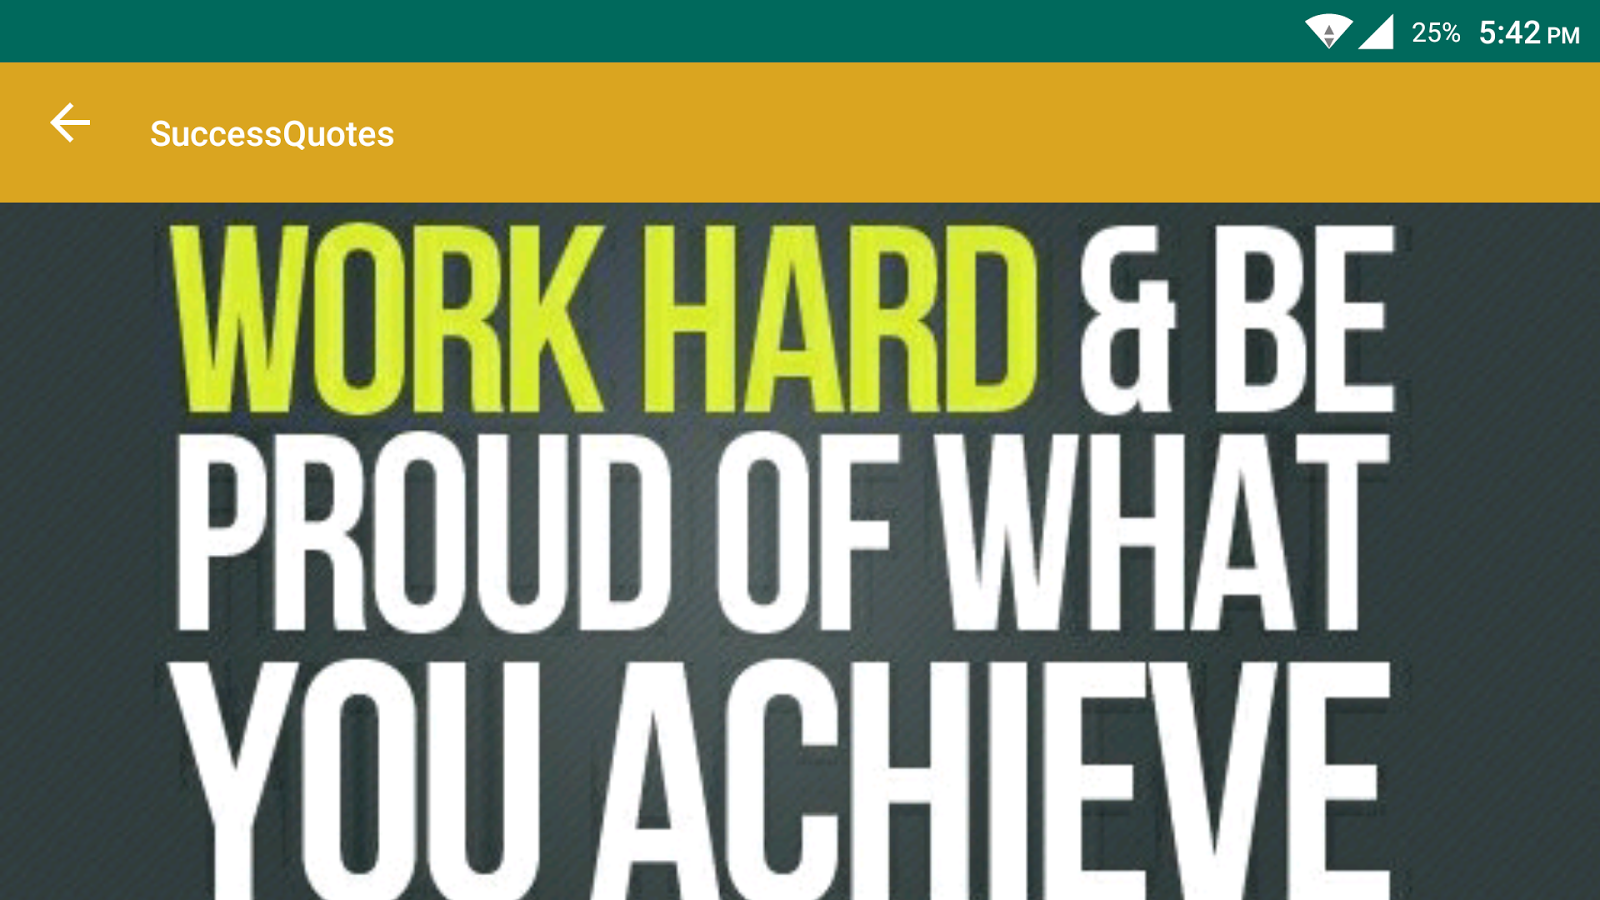 Success Quotes Wallpapers HD Android Apps on Google Play